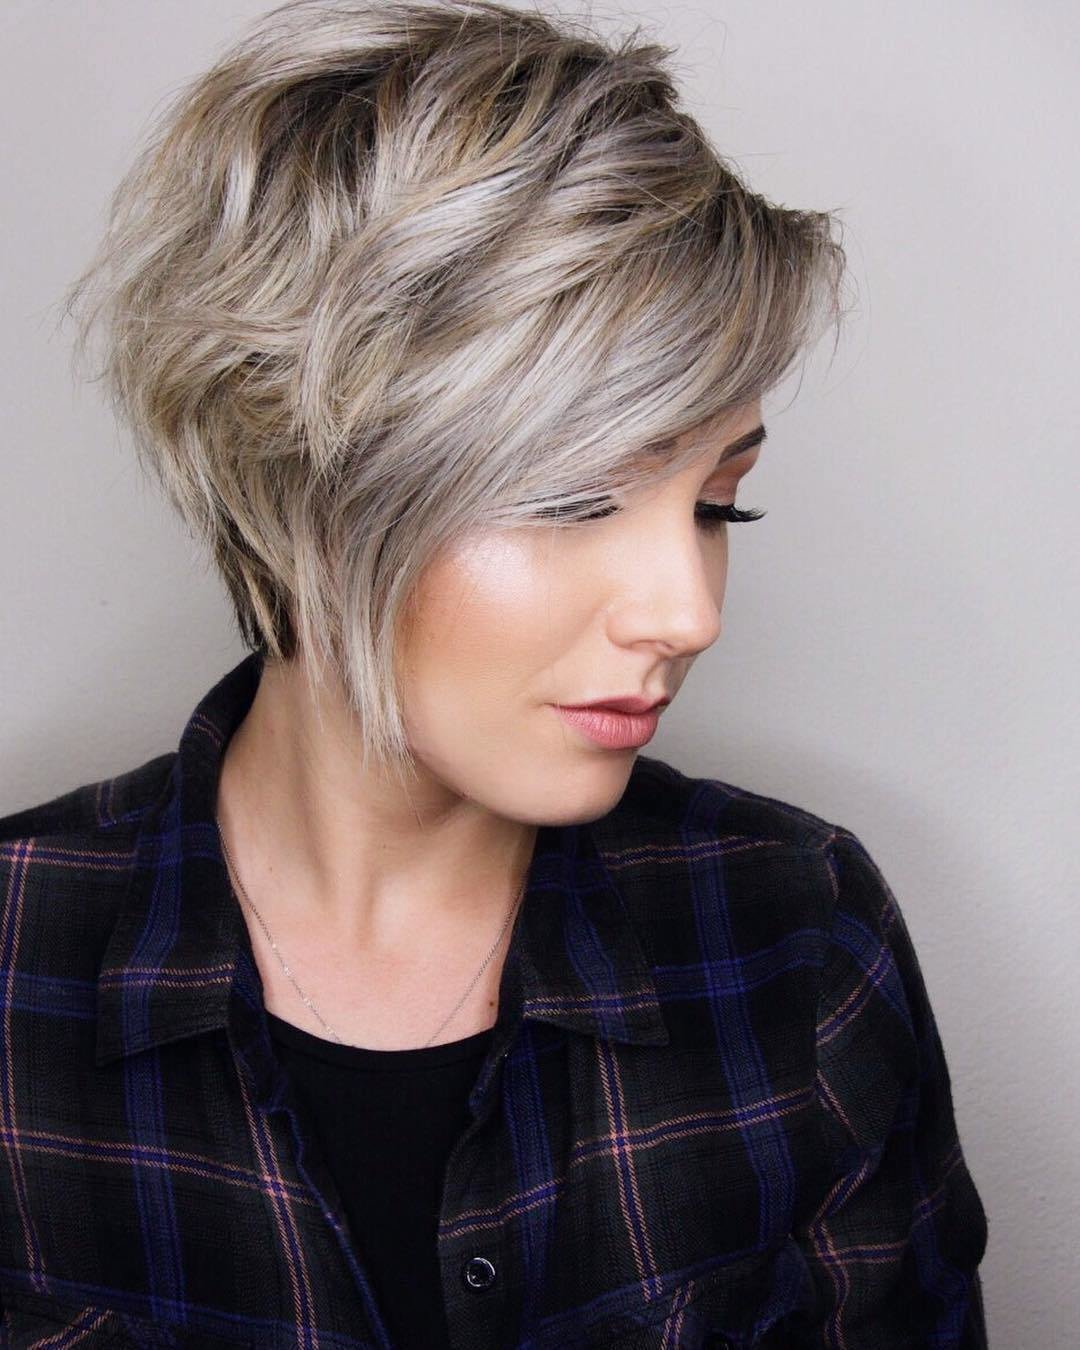 The Best 10 Trendy Layered Short Haircut Ideas 2019 Extra Pictures